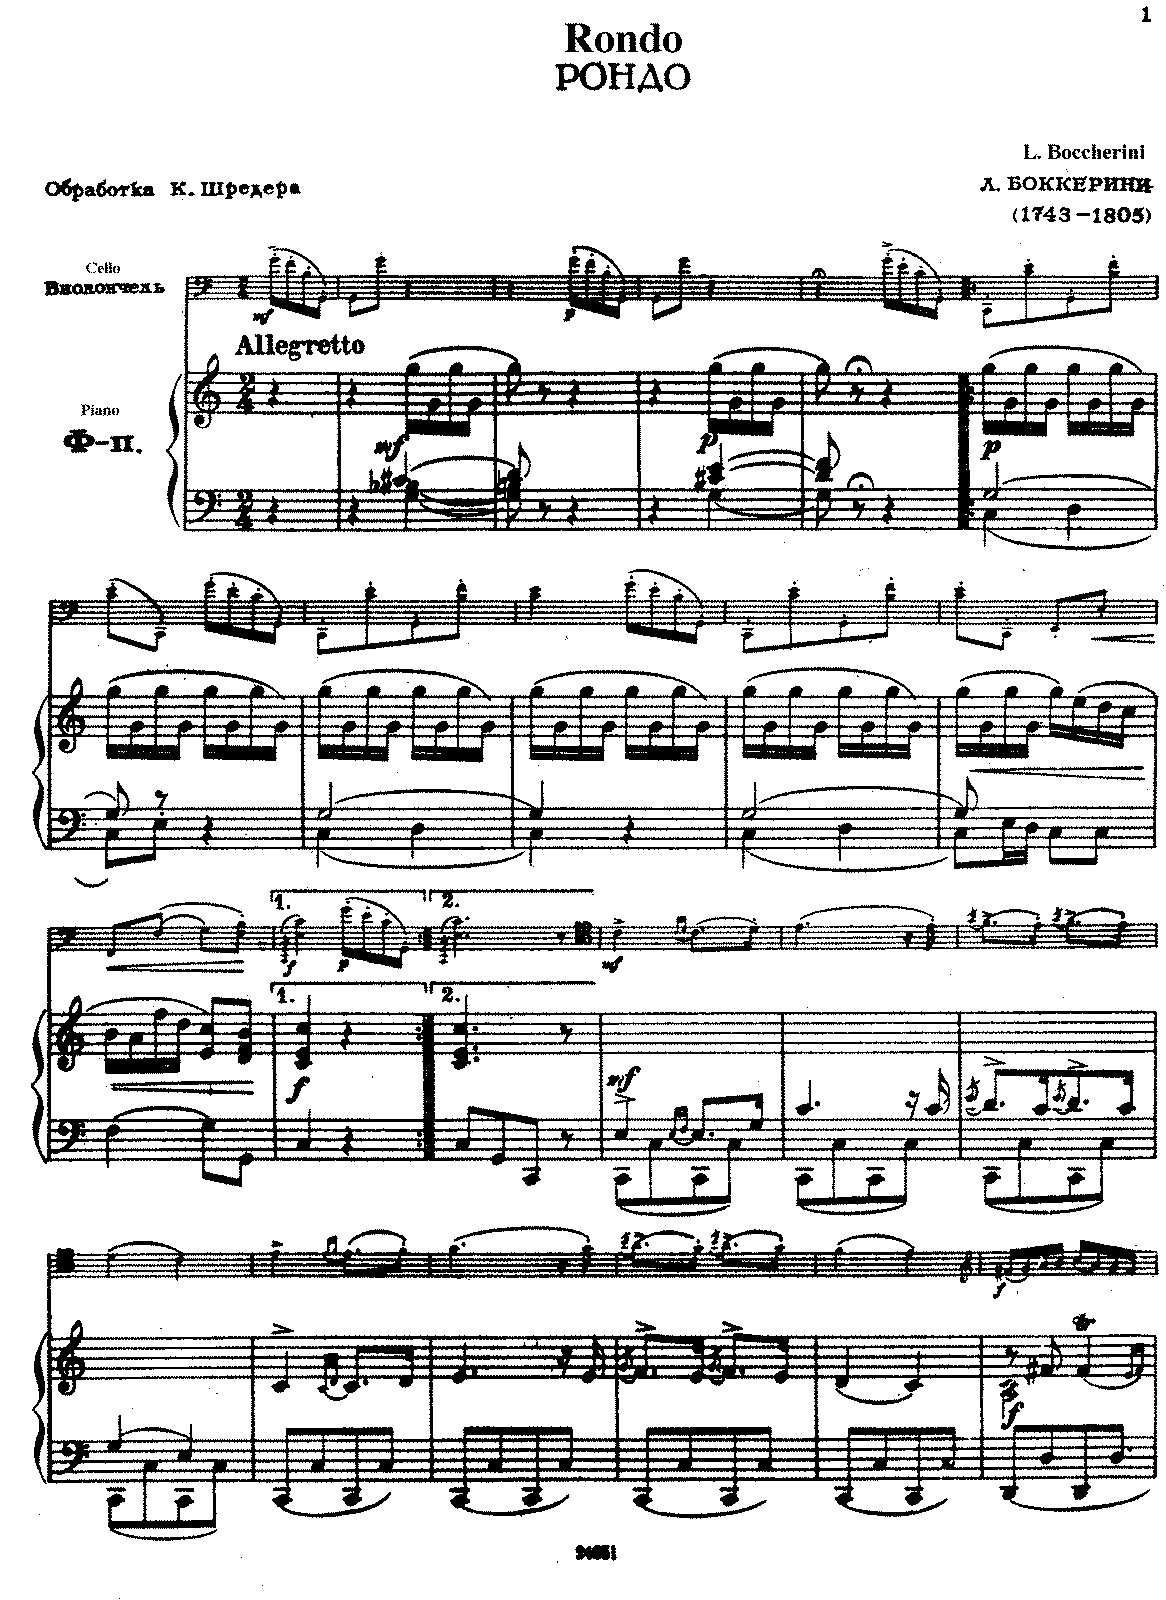 PMLP137464-Boccherini - Rondo from G310 for Cello and Piano.pdf